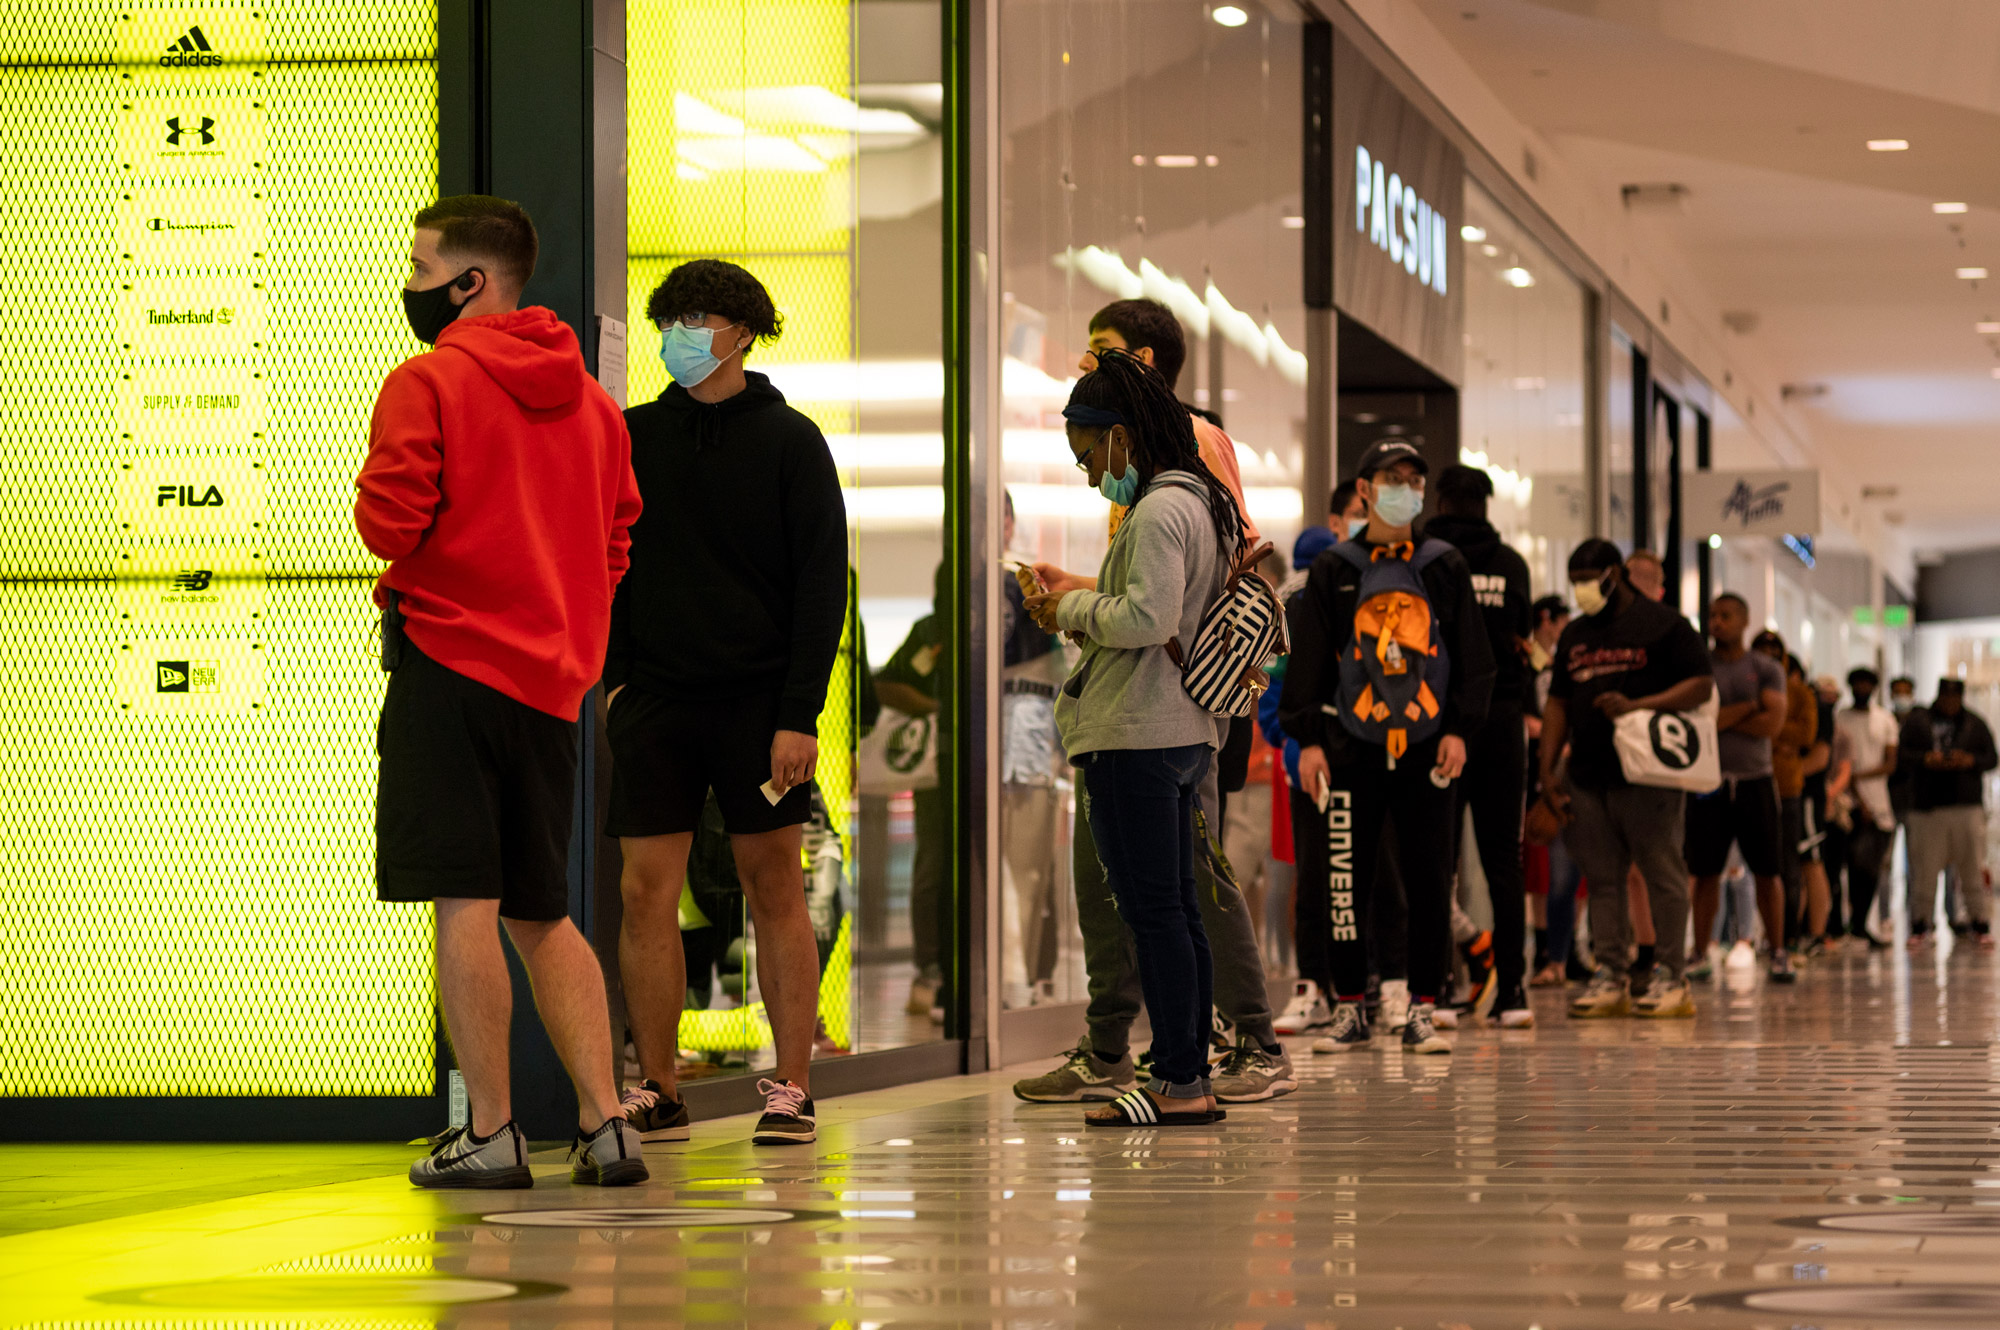 People line up at a store inside the Mall of America before it opens on June 10 in Minneapolis.